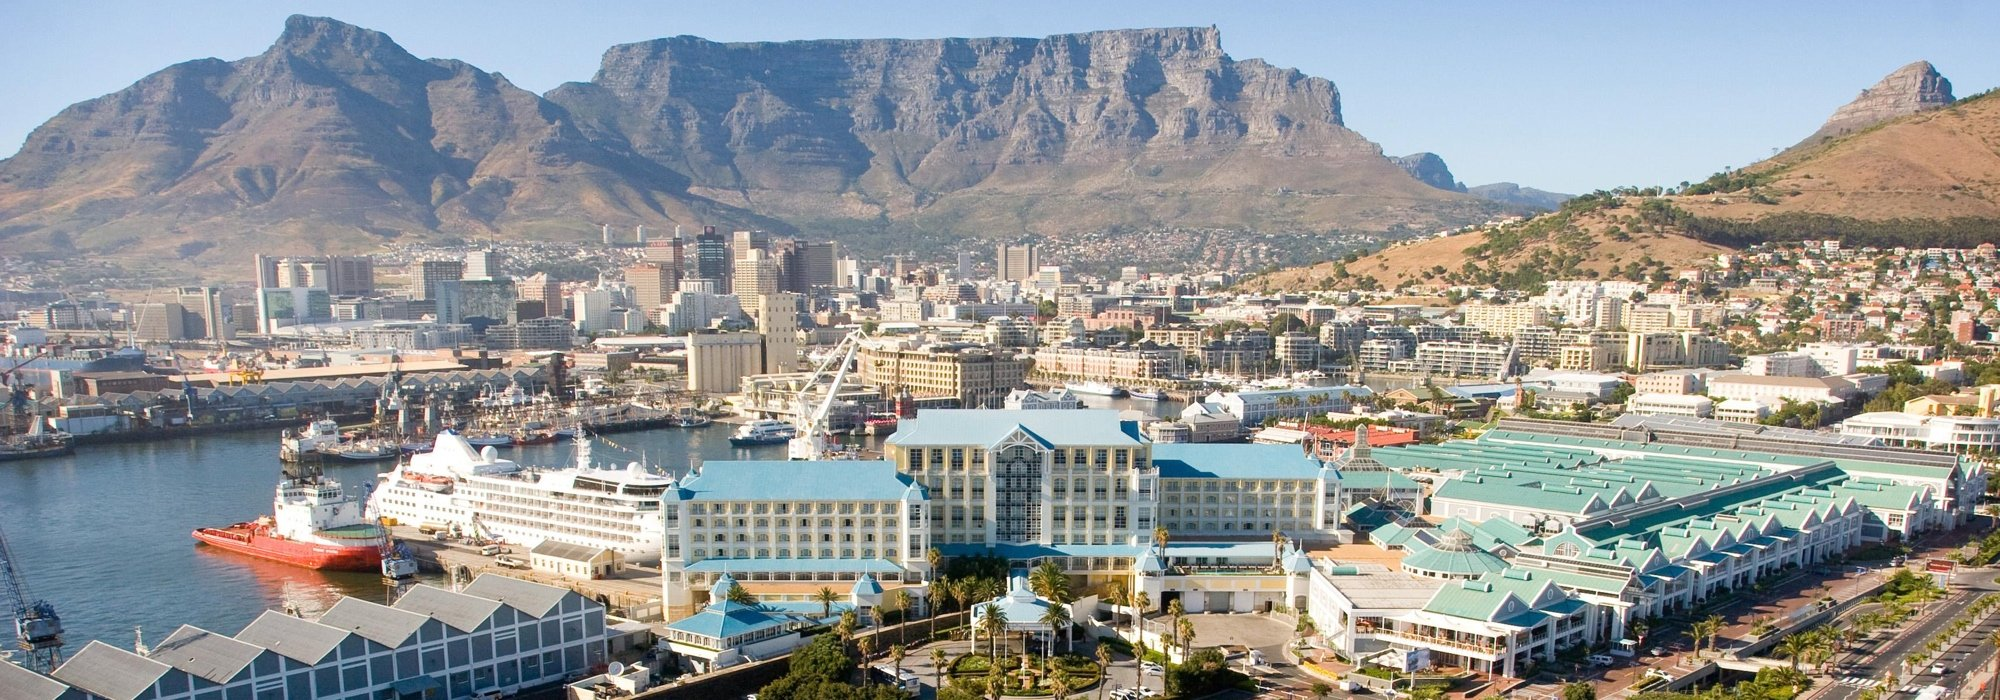 Table Bay Hotel and Waterfront